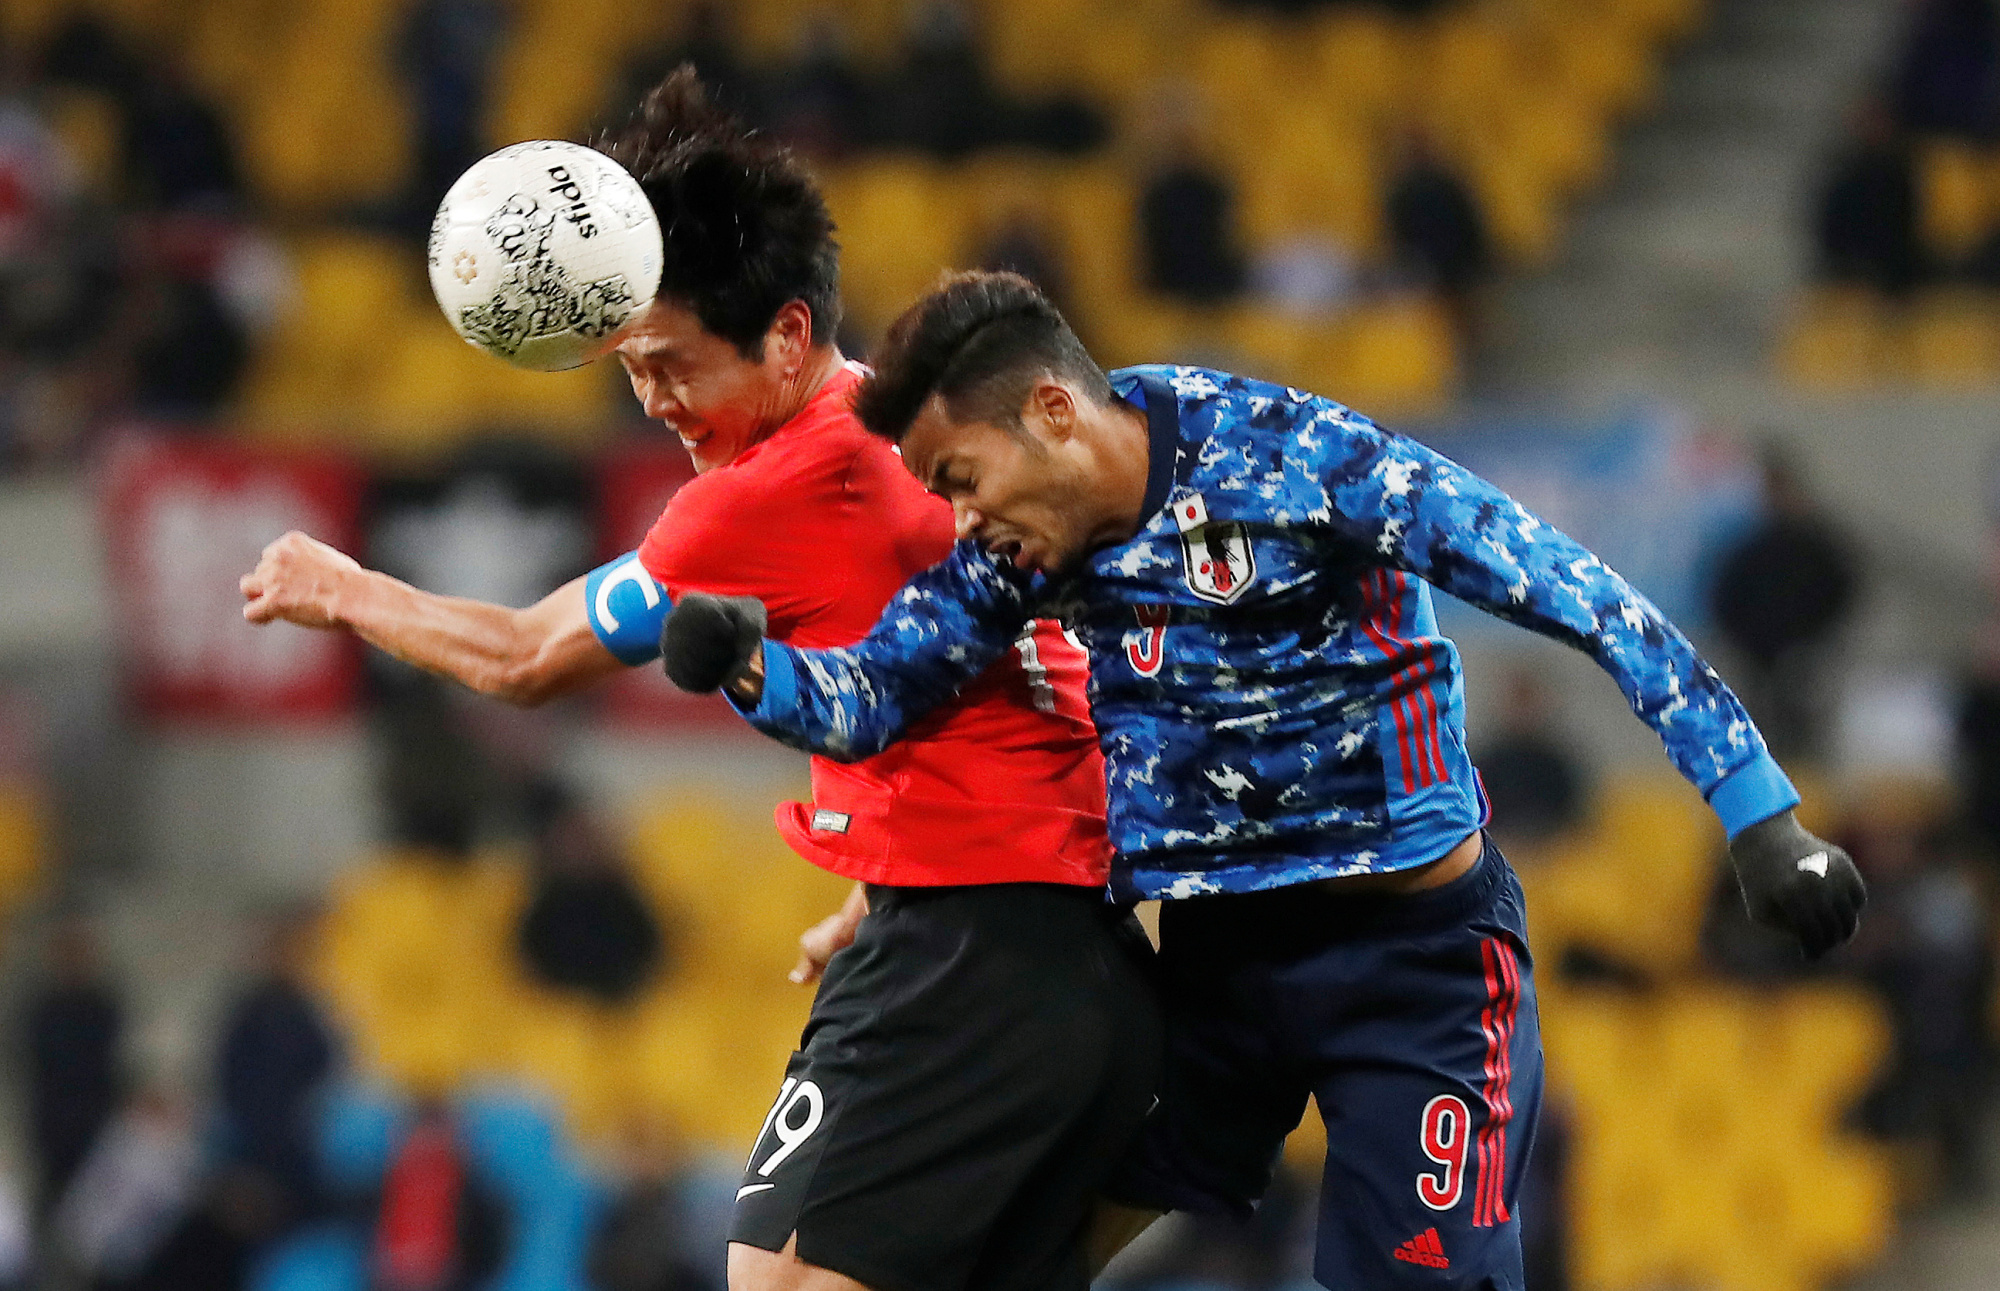 Japan's Musashi Suzuki (right) and South Korea's Kim Young-gwon vie for the ball during the men's final at the East Asian Football Federation E-1 Championship on Wednesday in Busan, South Korea. | REUTERS